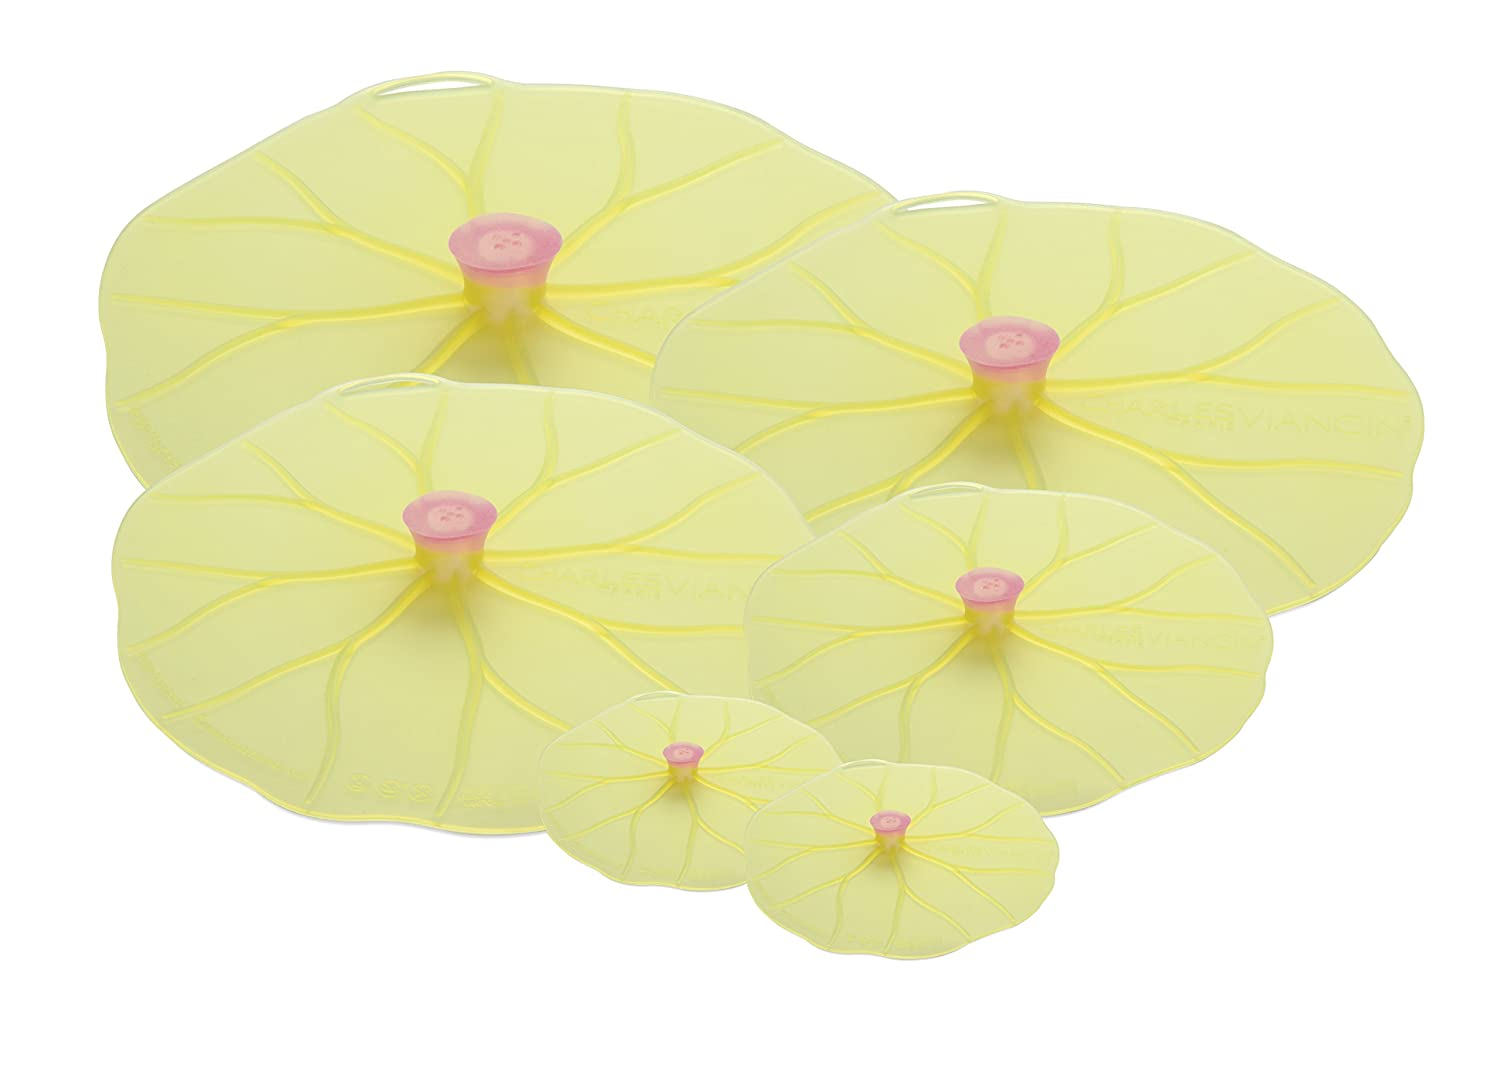 Charles Viancin AGS10996 Lilypad Lid Set of 6